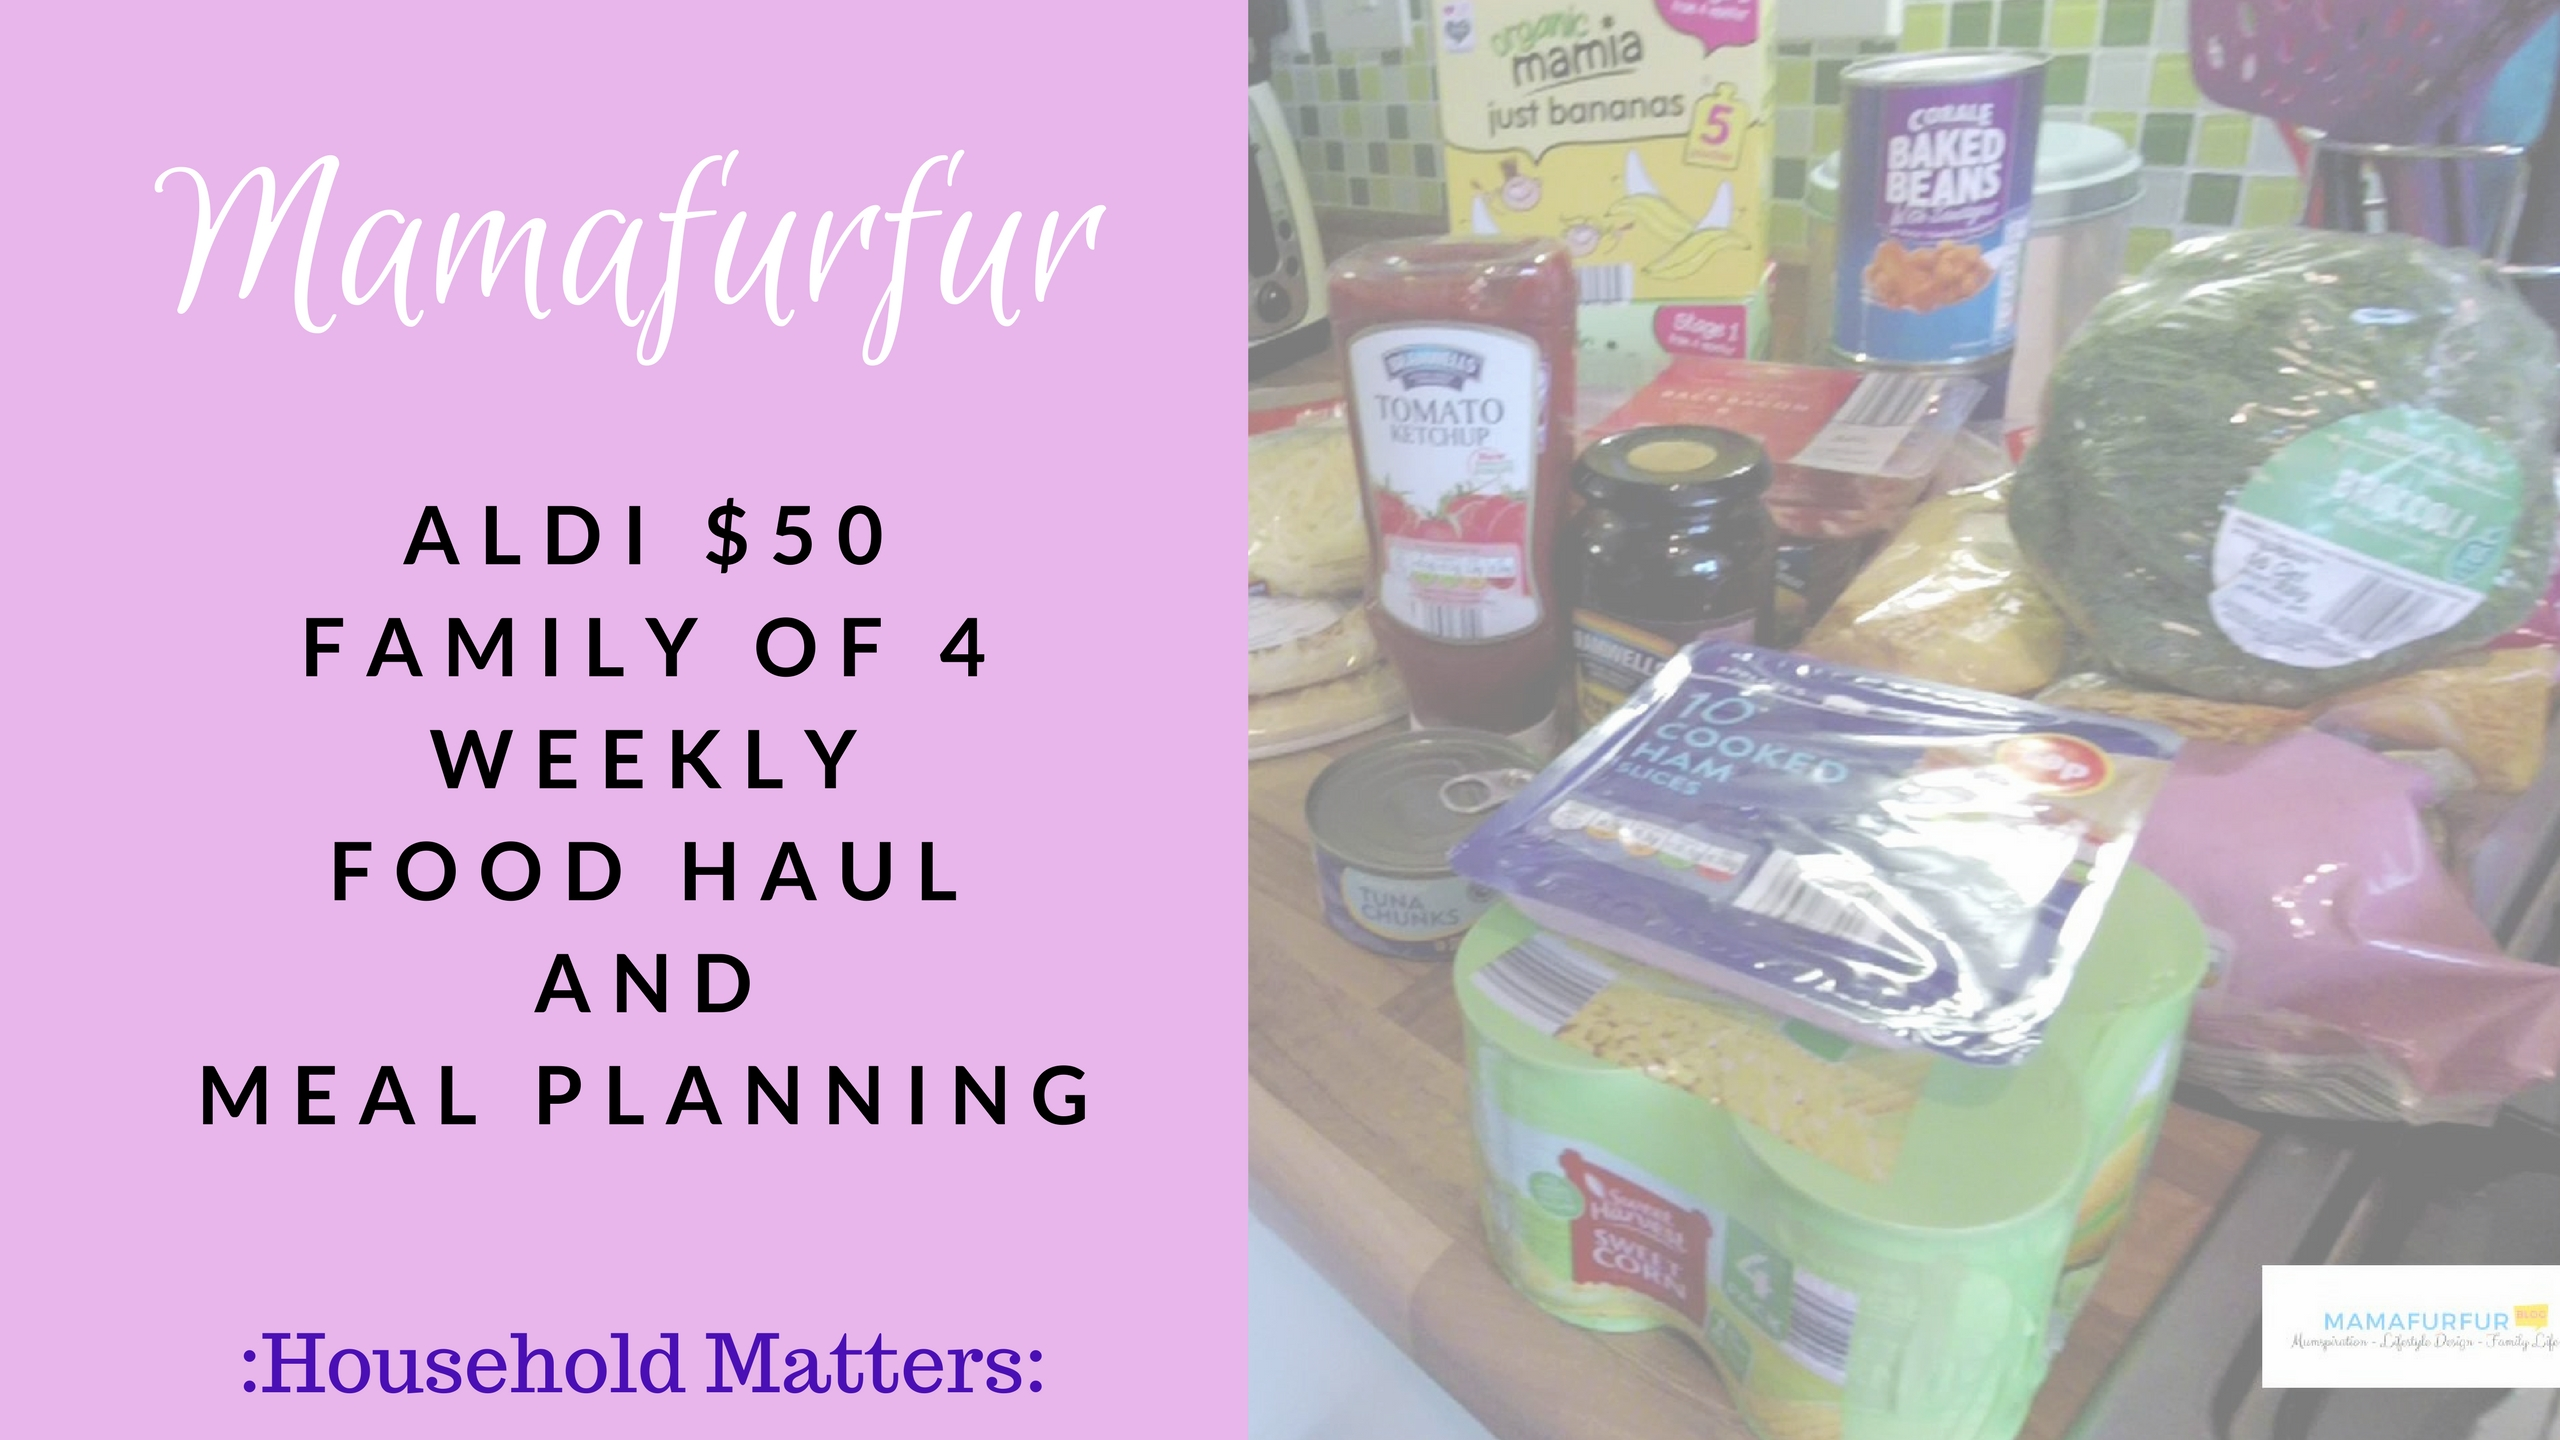 Aldi $50 Family of 4 Weekly Food Shop and Meal Planning ¦ Mamafurfur ¦ Family Budgetting